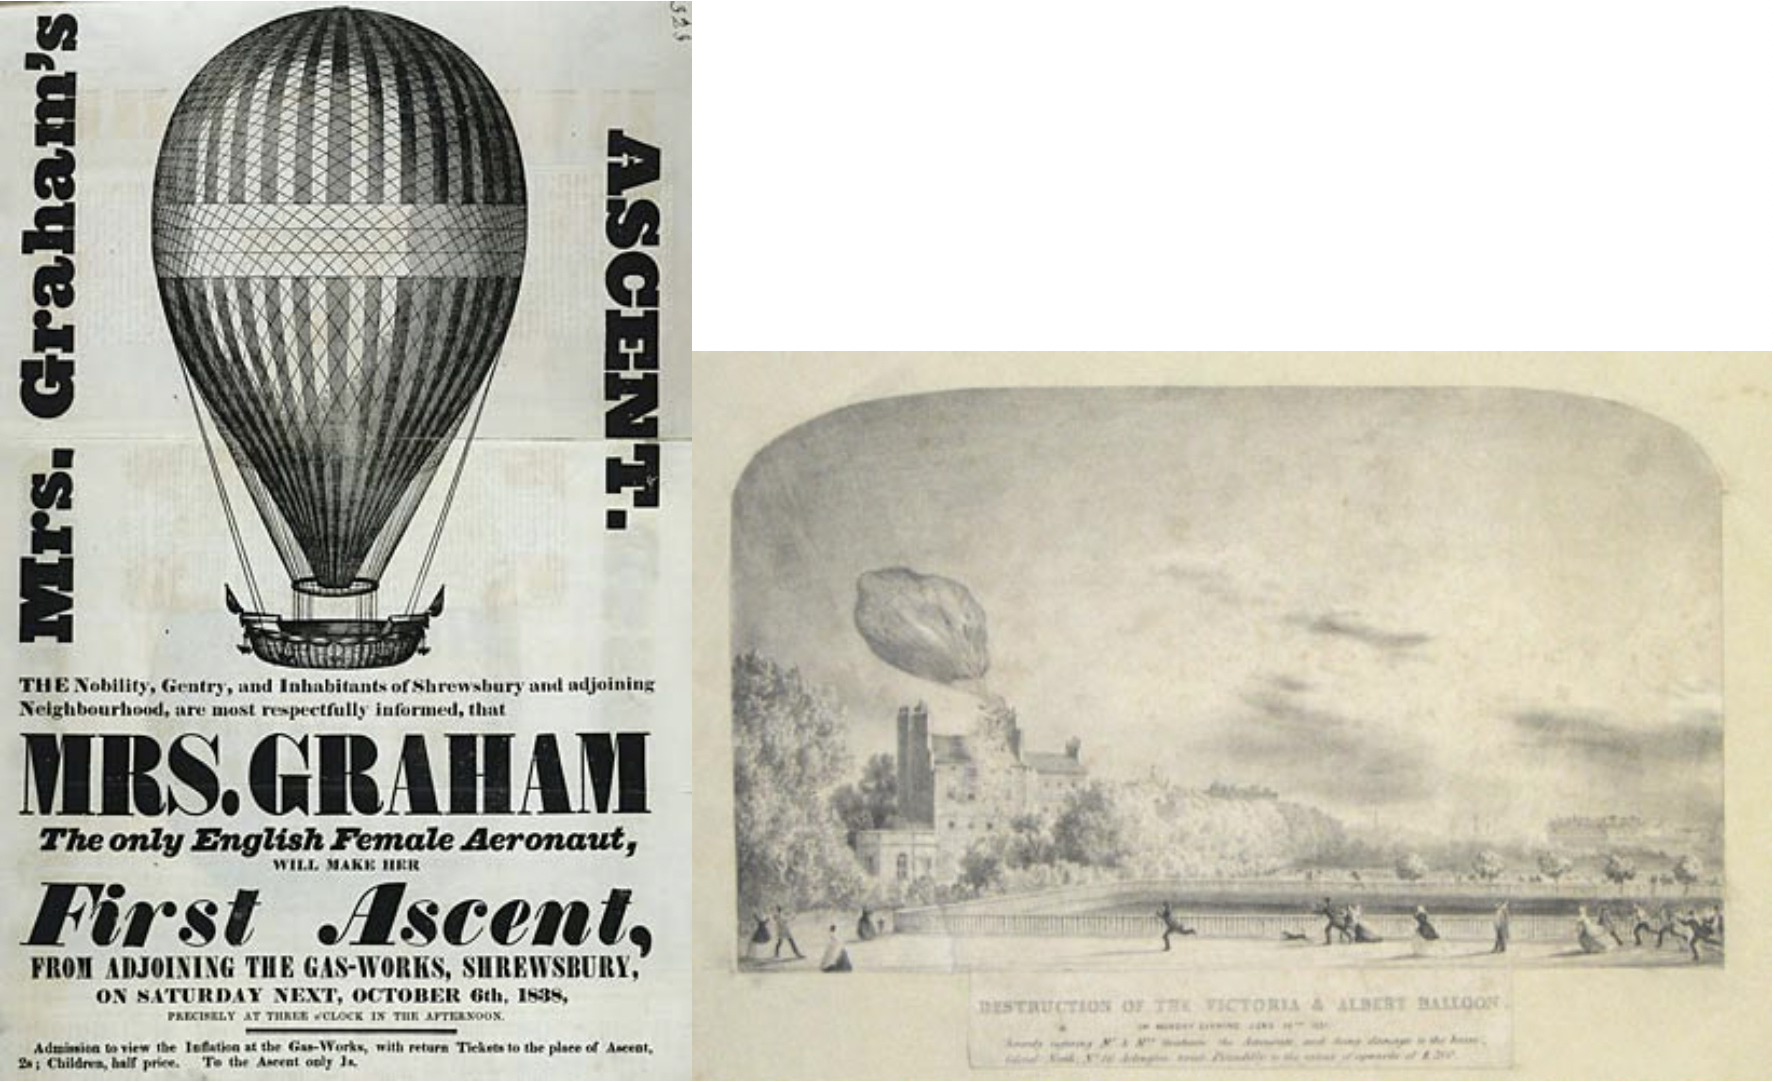 Left: advertisement for Mrs. Graham's balloon. Right: drawing of the destruction of the Victoria and Albert Balloon.